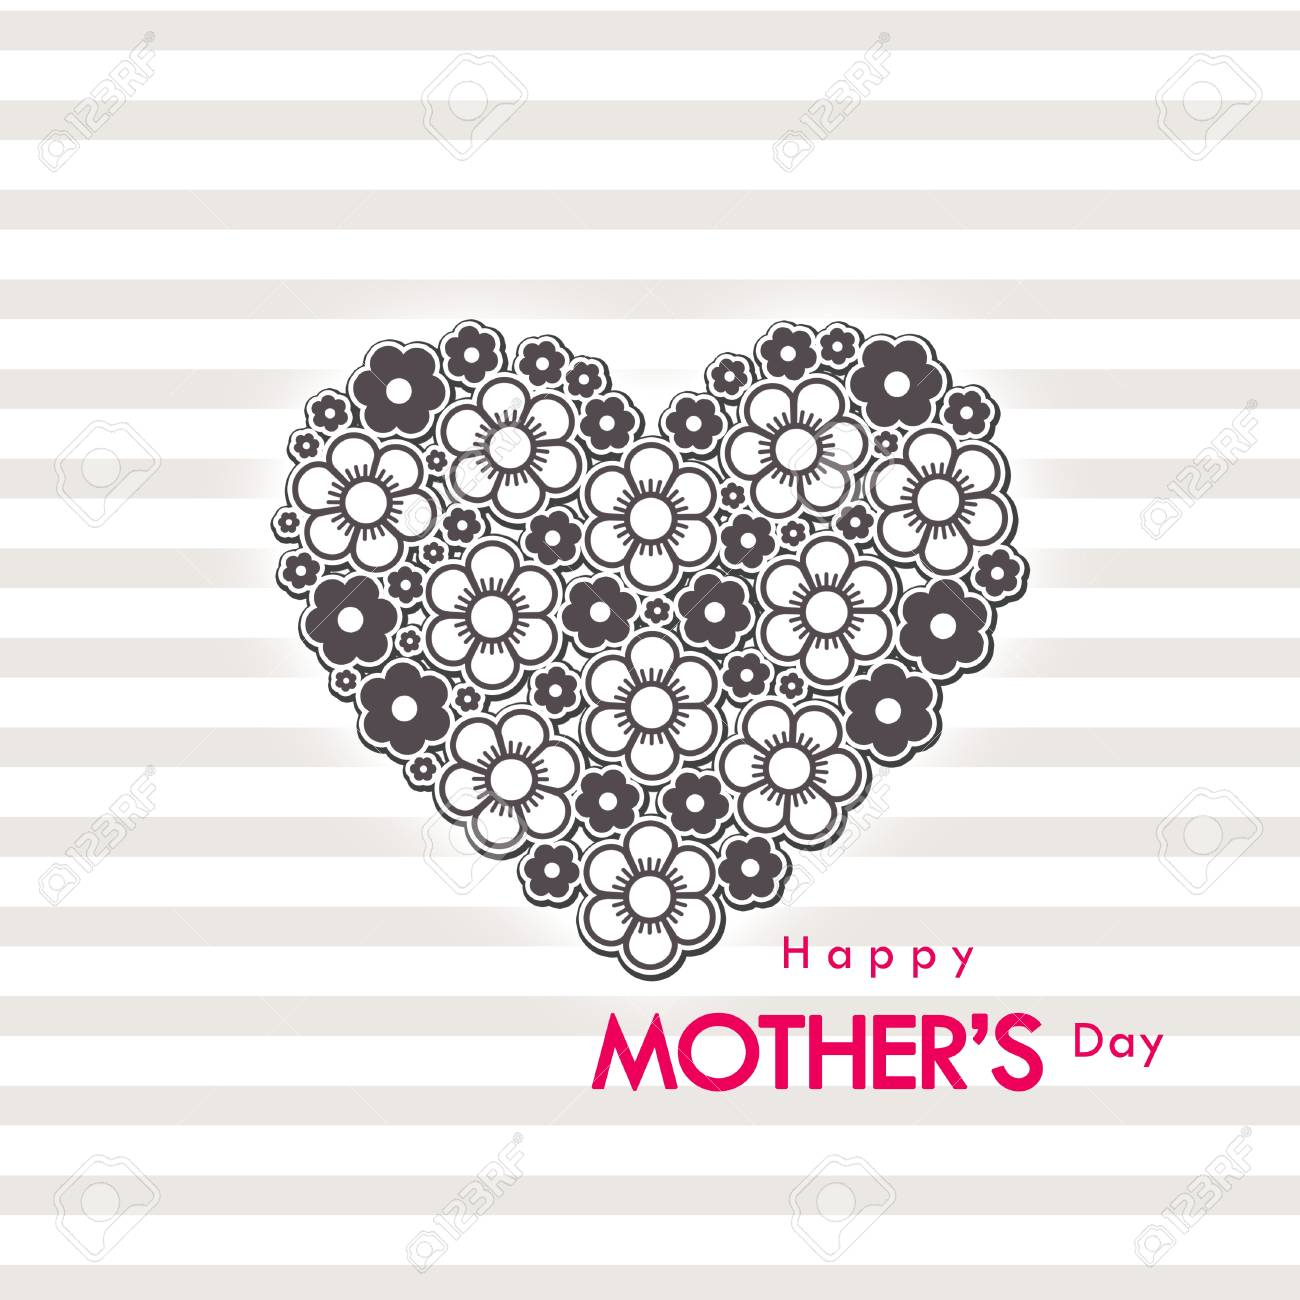 mother s day card Stock Photo - 13152336